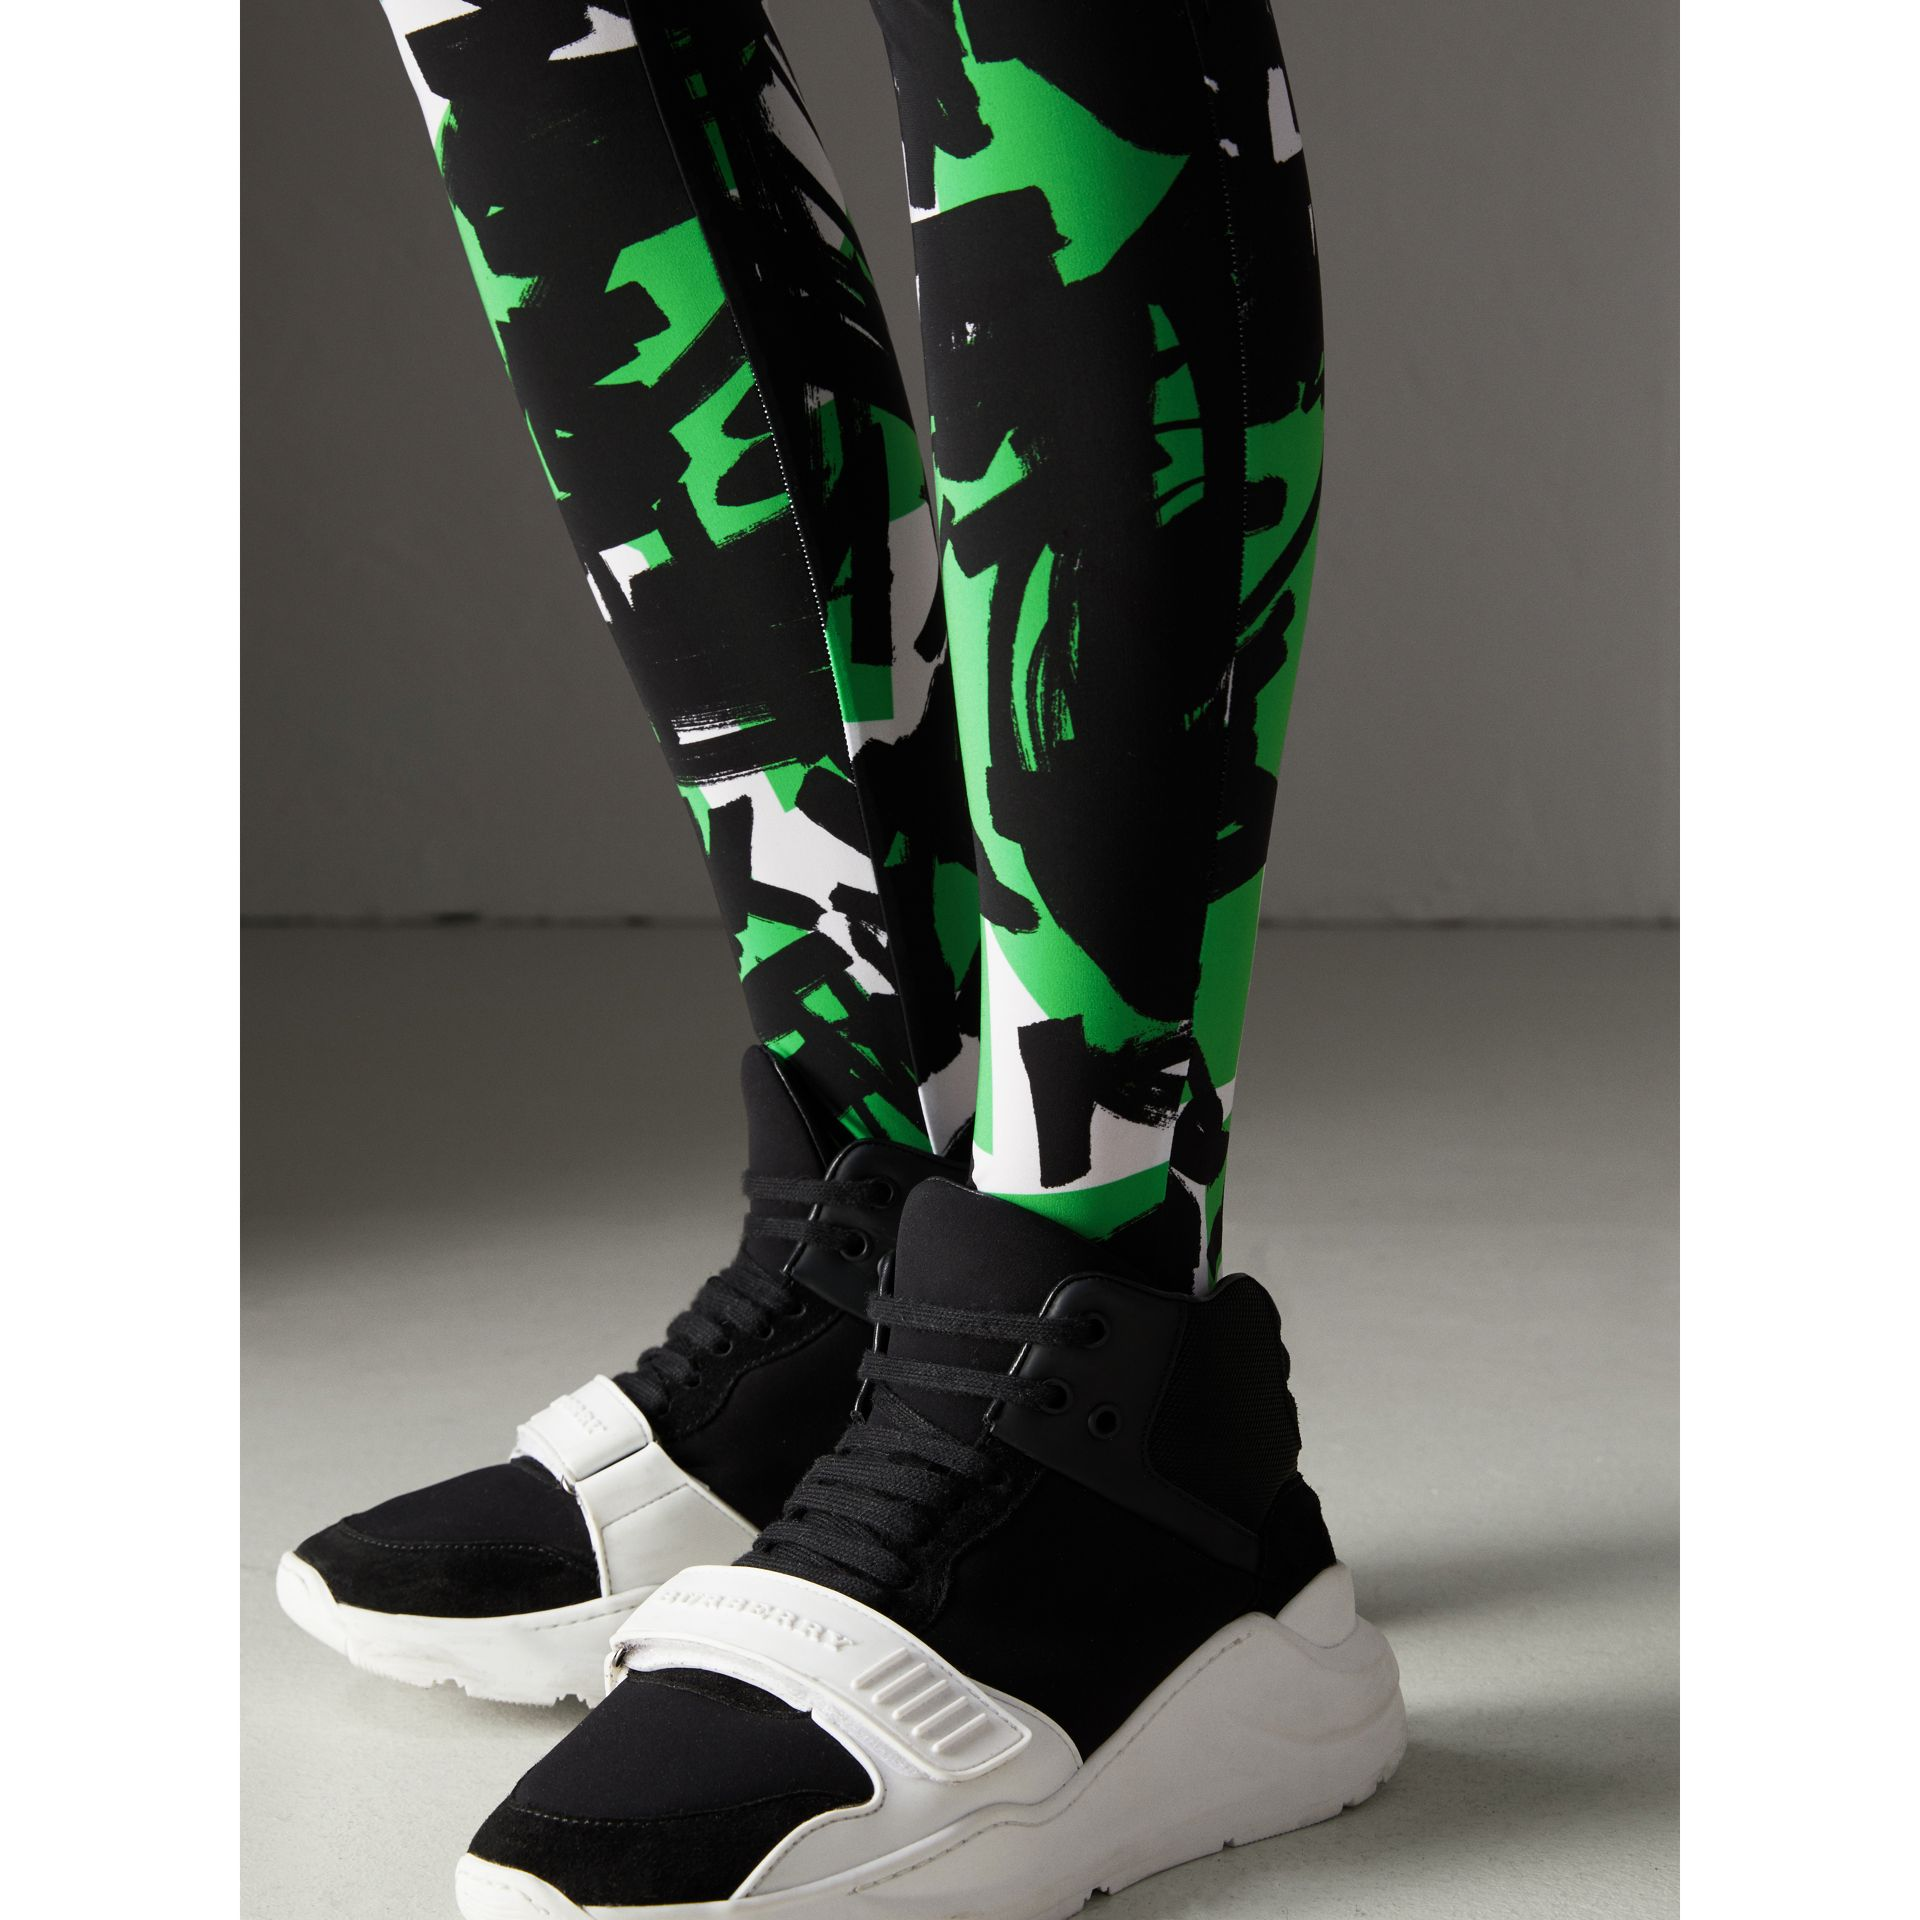 Legging à imprimé graffiti (Vert Néon) - Femme | Burberry - photo de la galerie 1